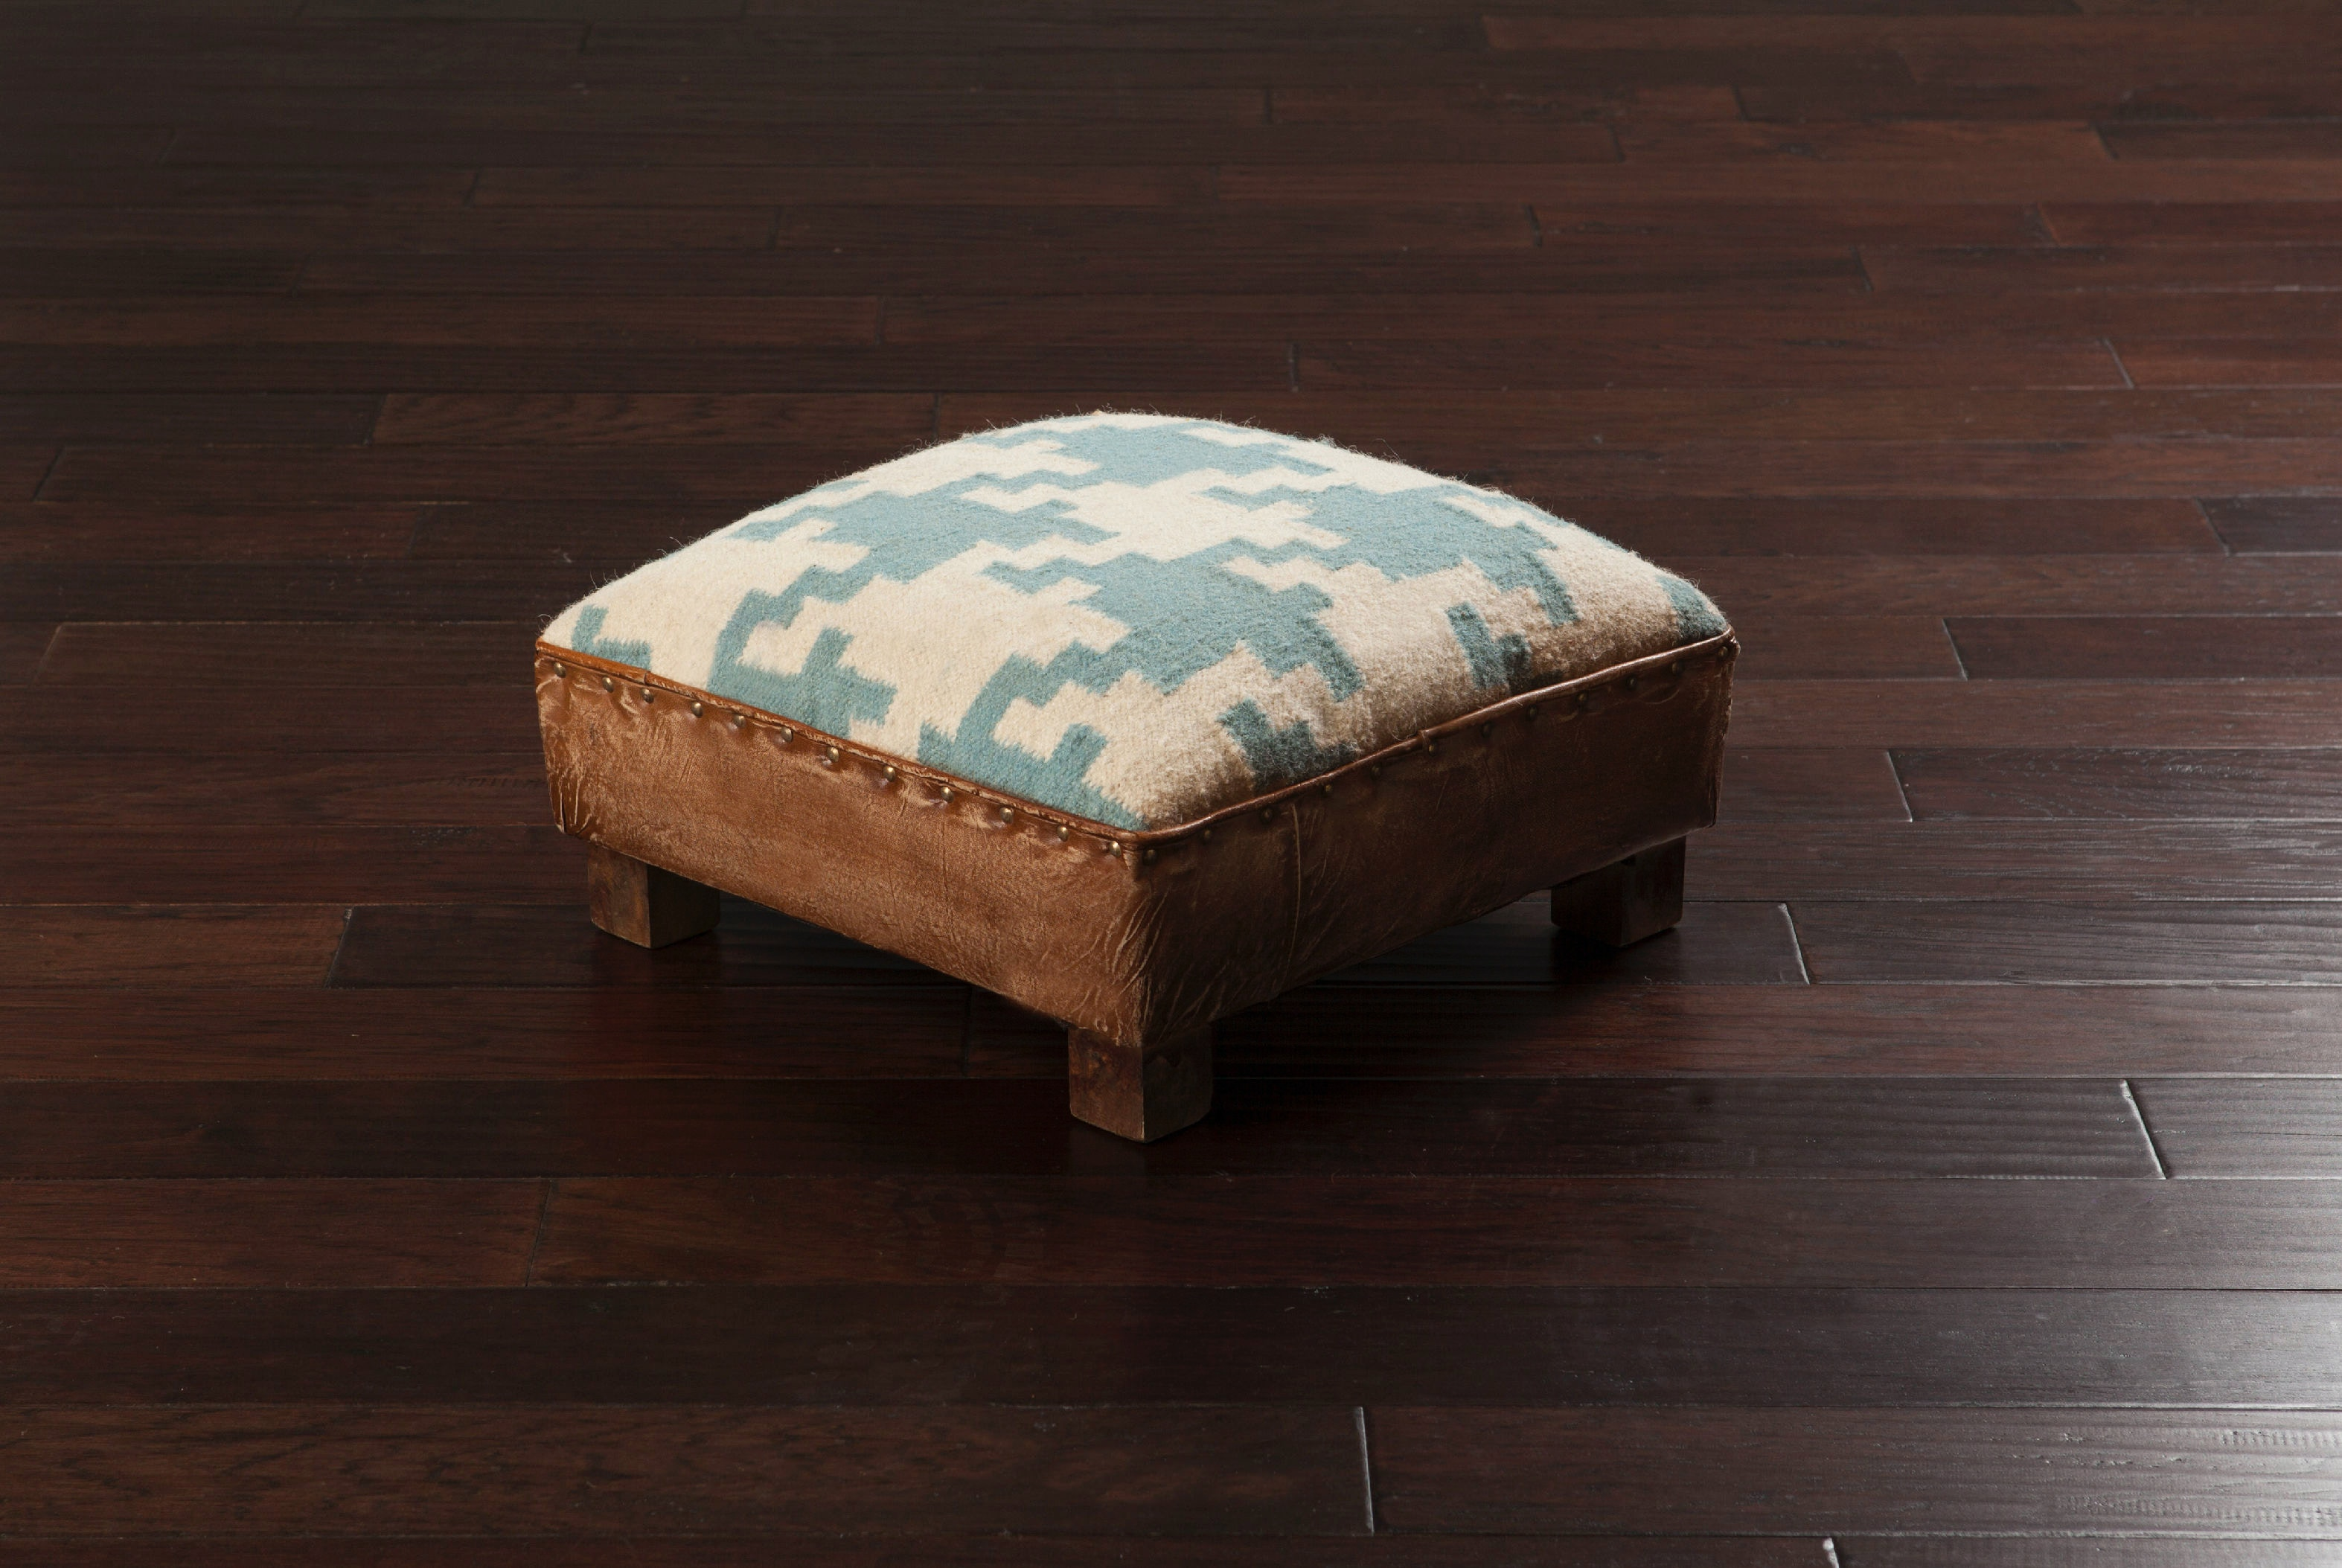 Surya Furniture 18.8 X 18.8 X 9.2 Foot Stool FL1174 474723